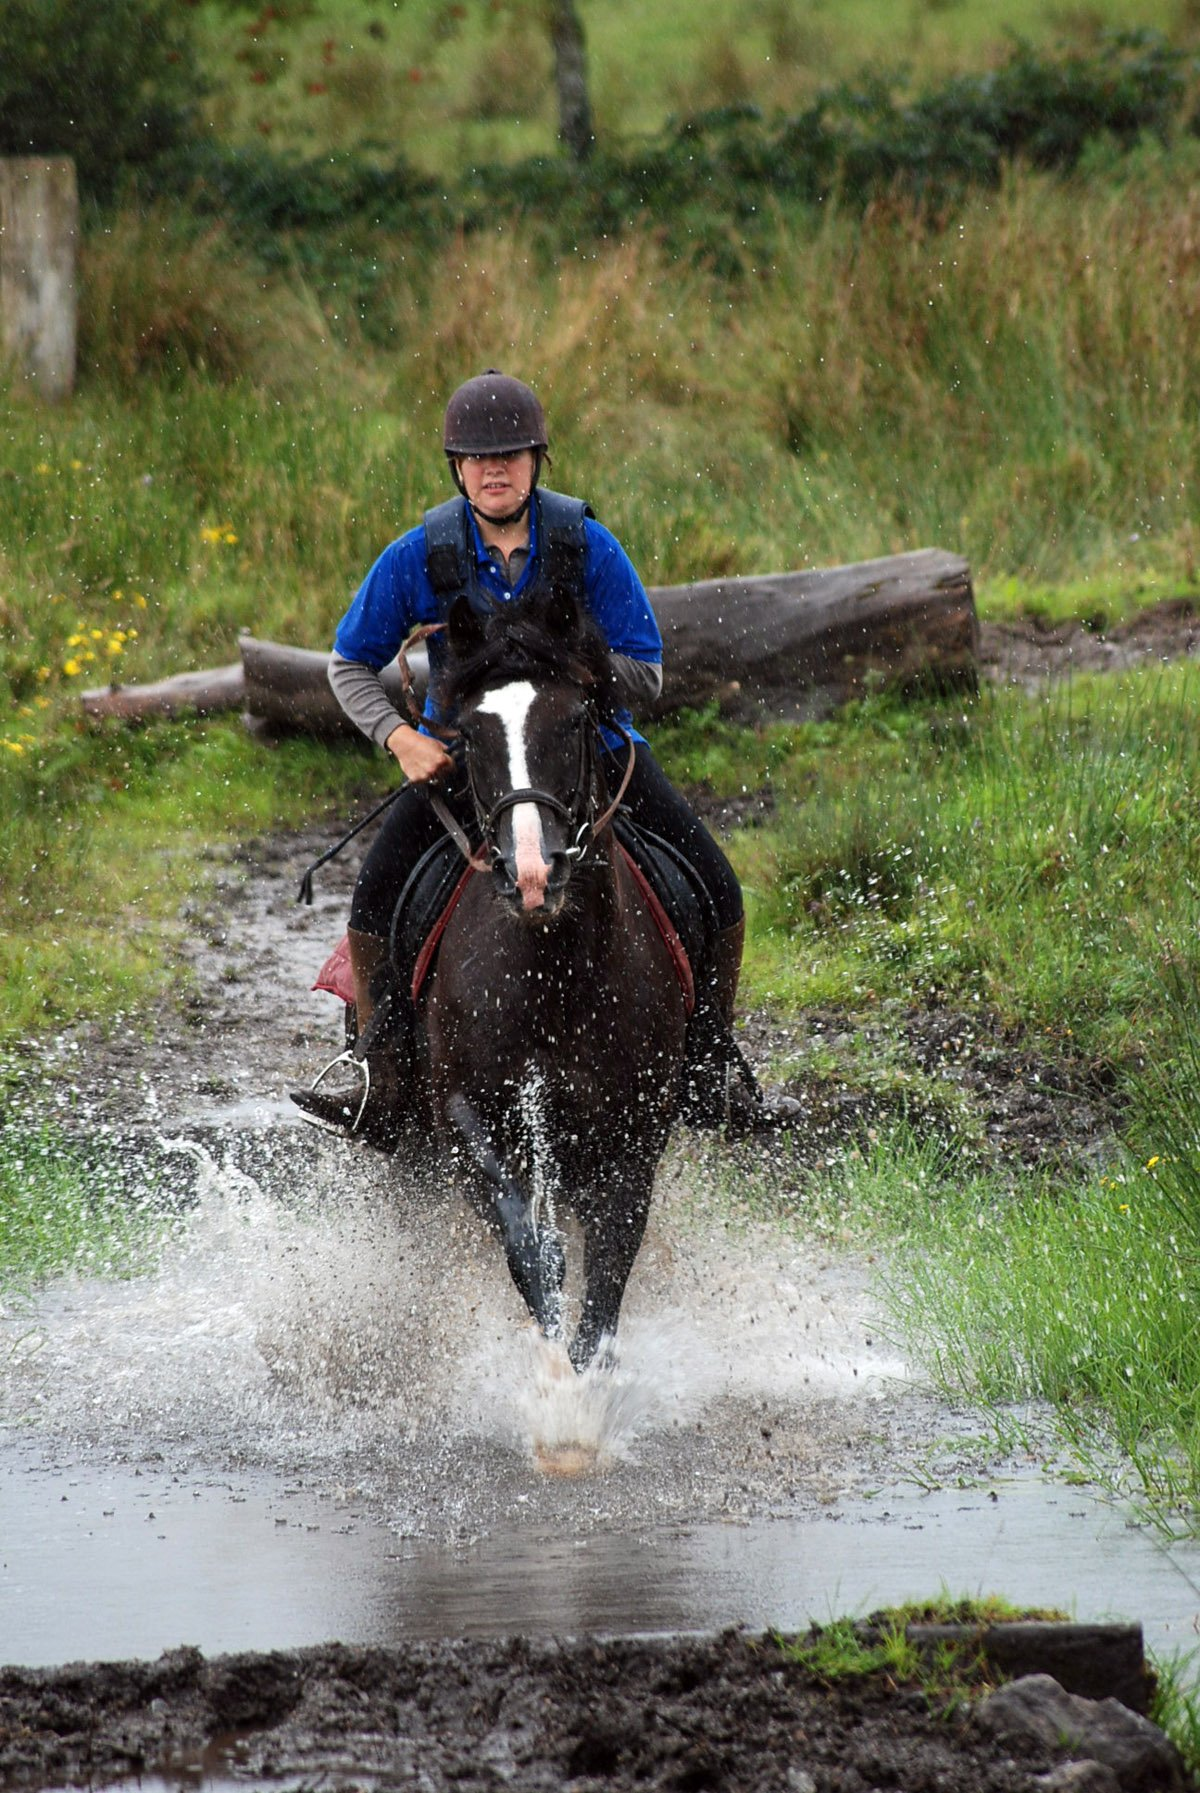 Slieve Aughty Centre Horse Riding and Jumping - Visit Galway